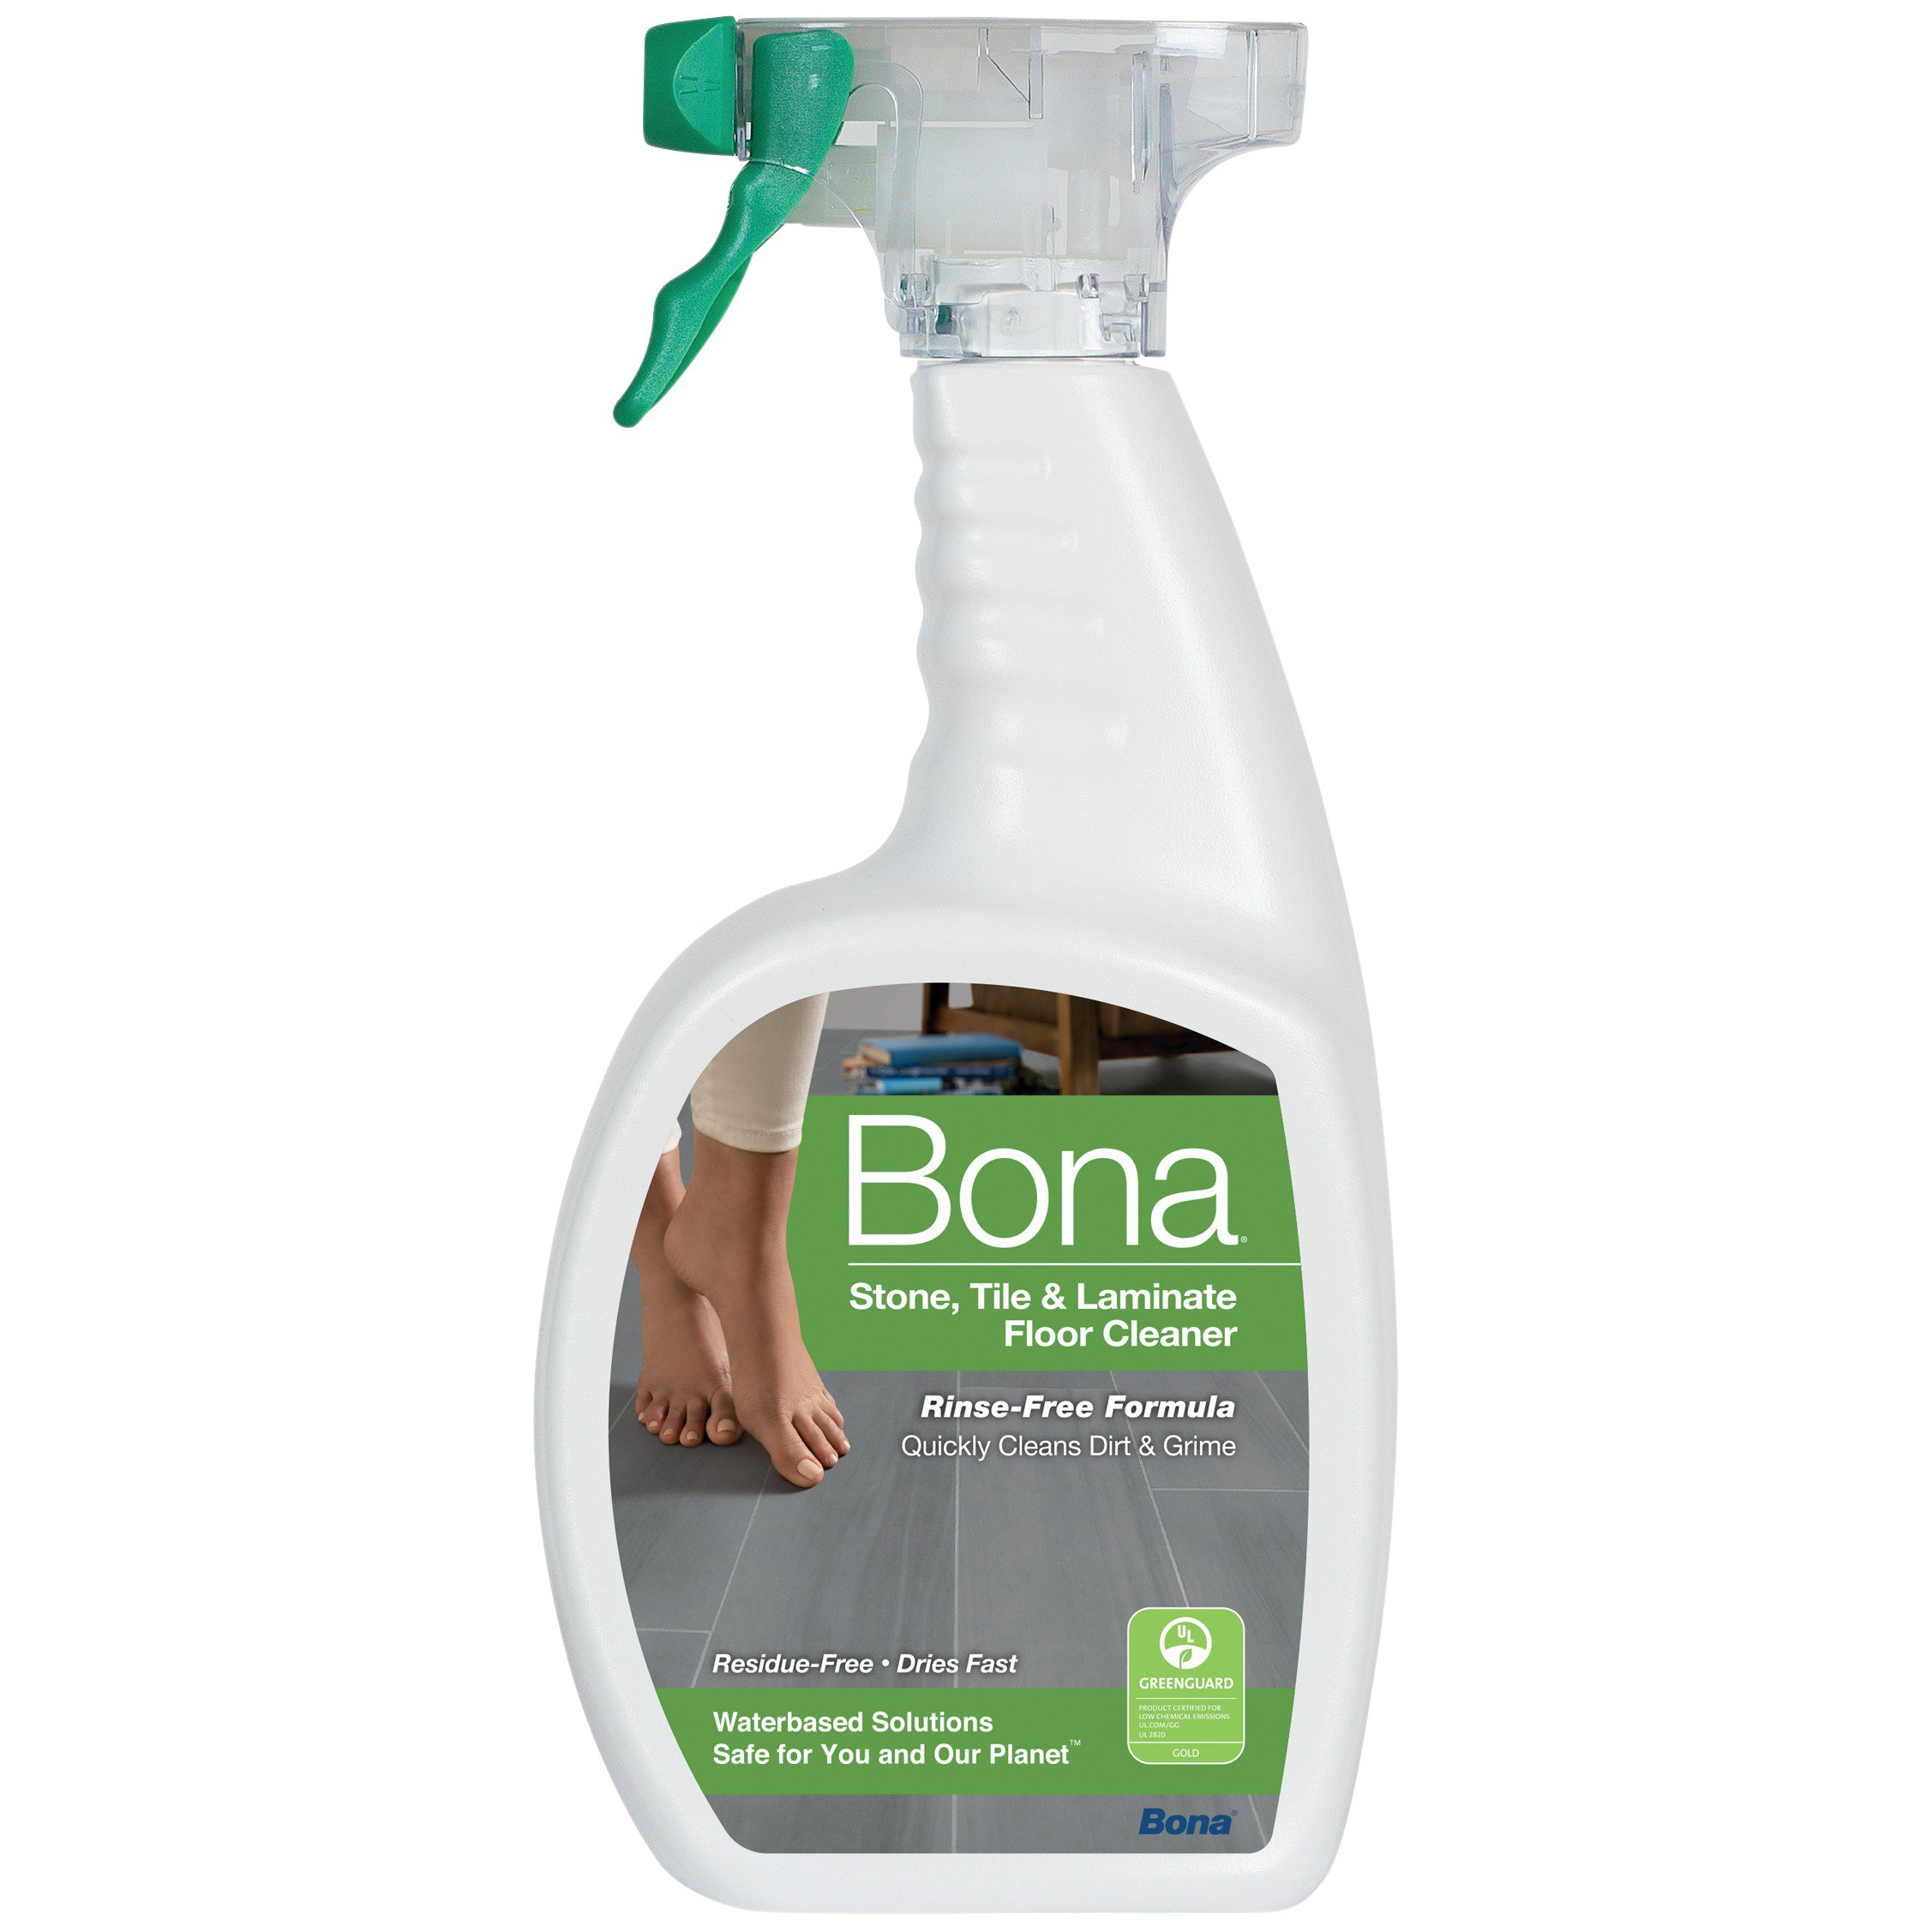 Bona Stone Tile Laminate Floor Cleaner Metal Cleaners At H E B